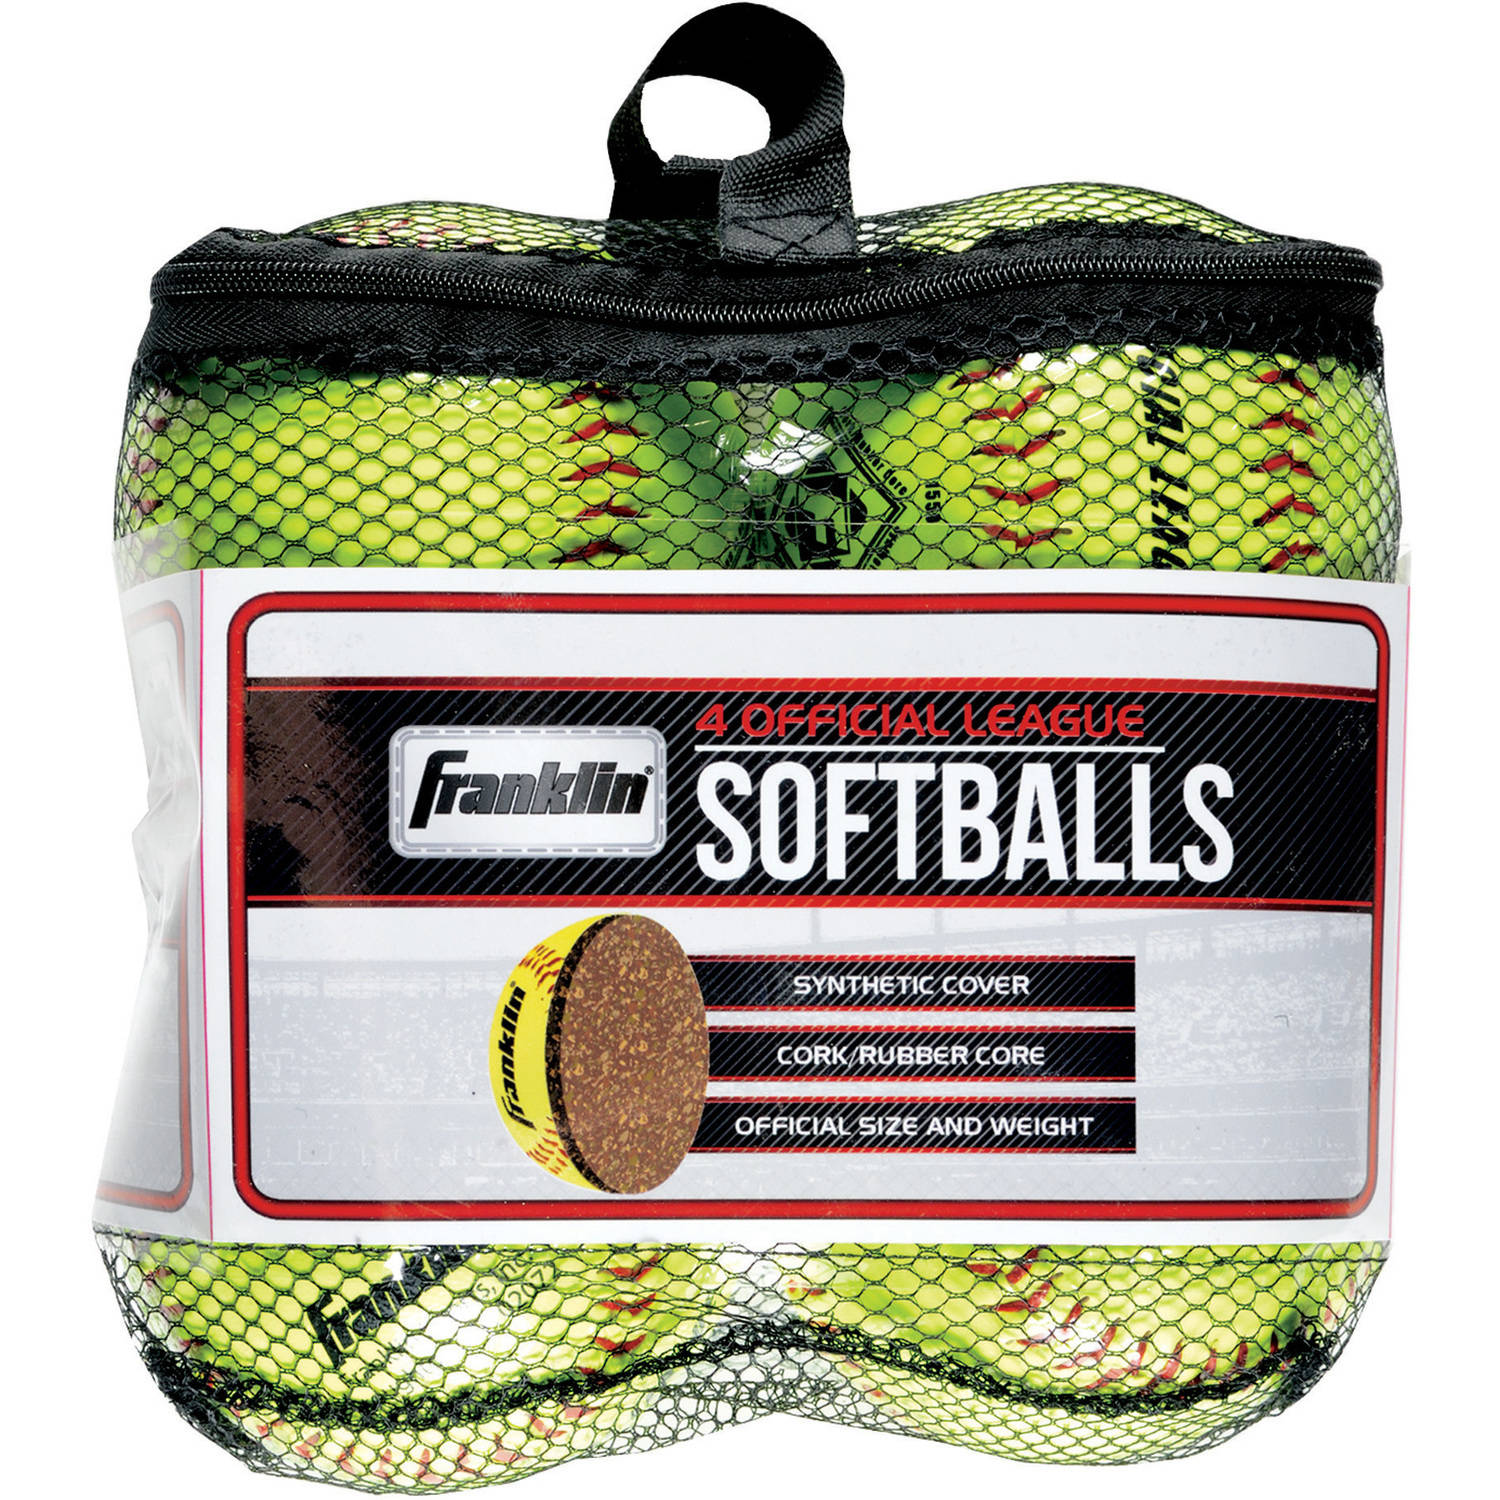 Franklin Sports 4 Official League Softballs, Yellow